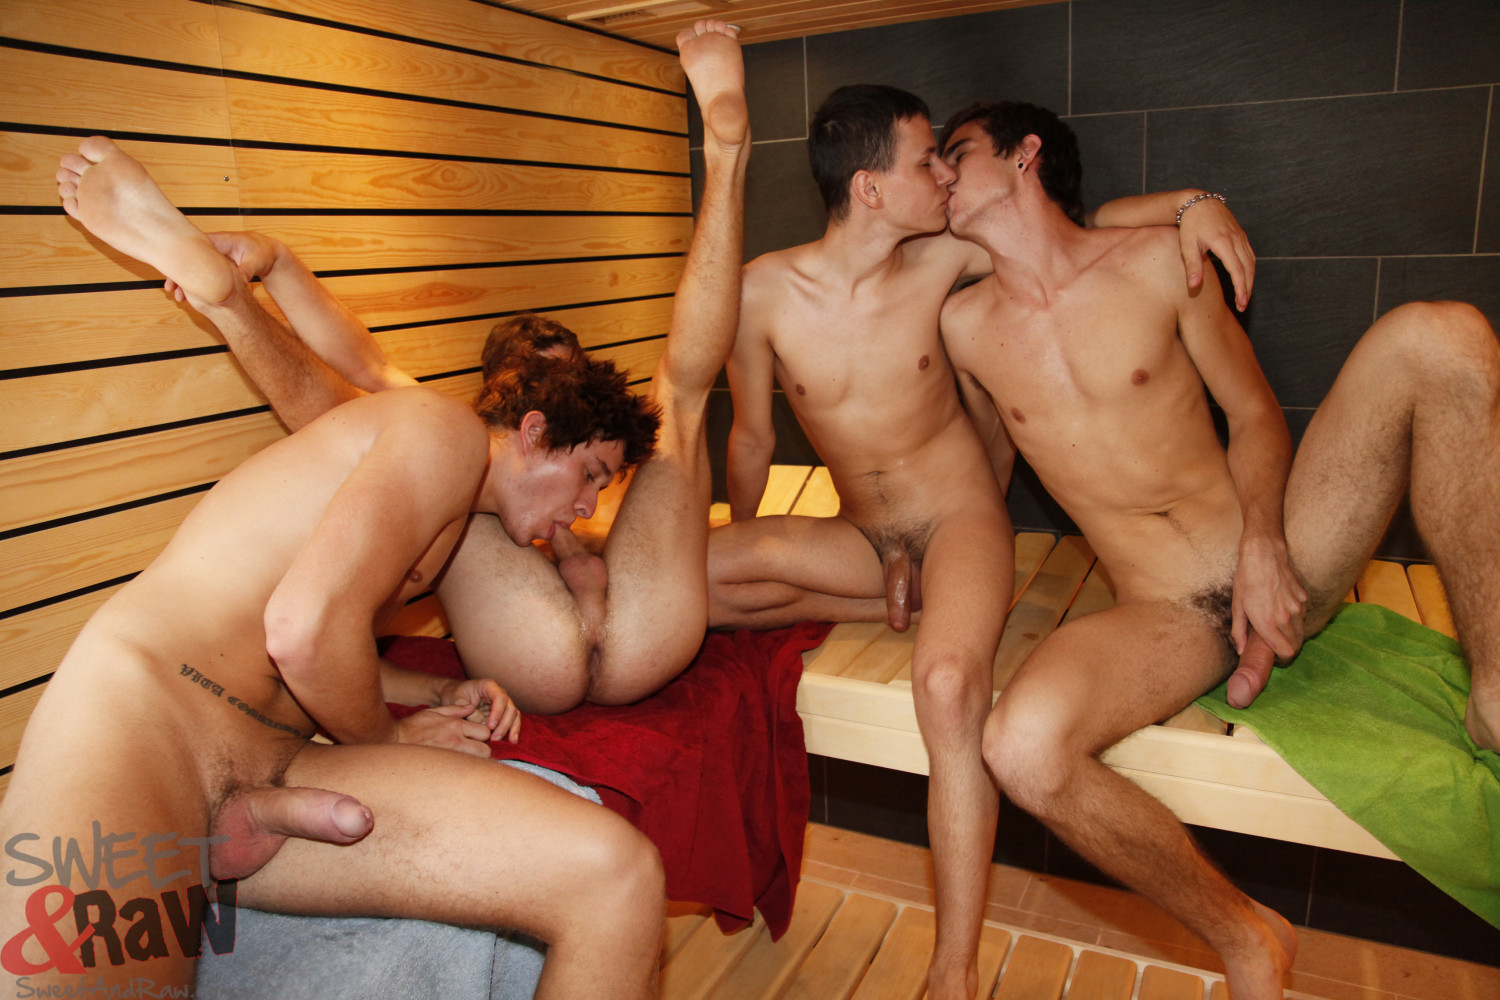 gay schaumparty handjob in der sauna